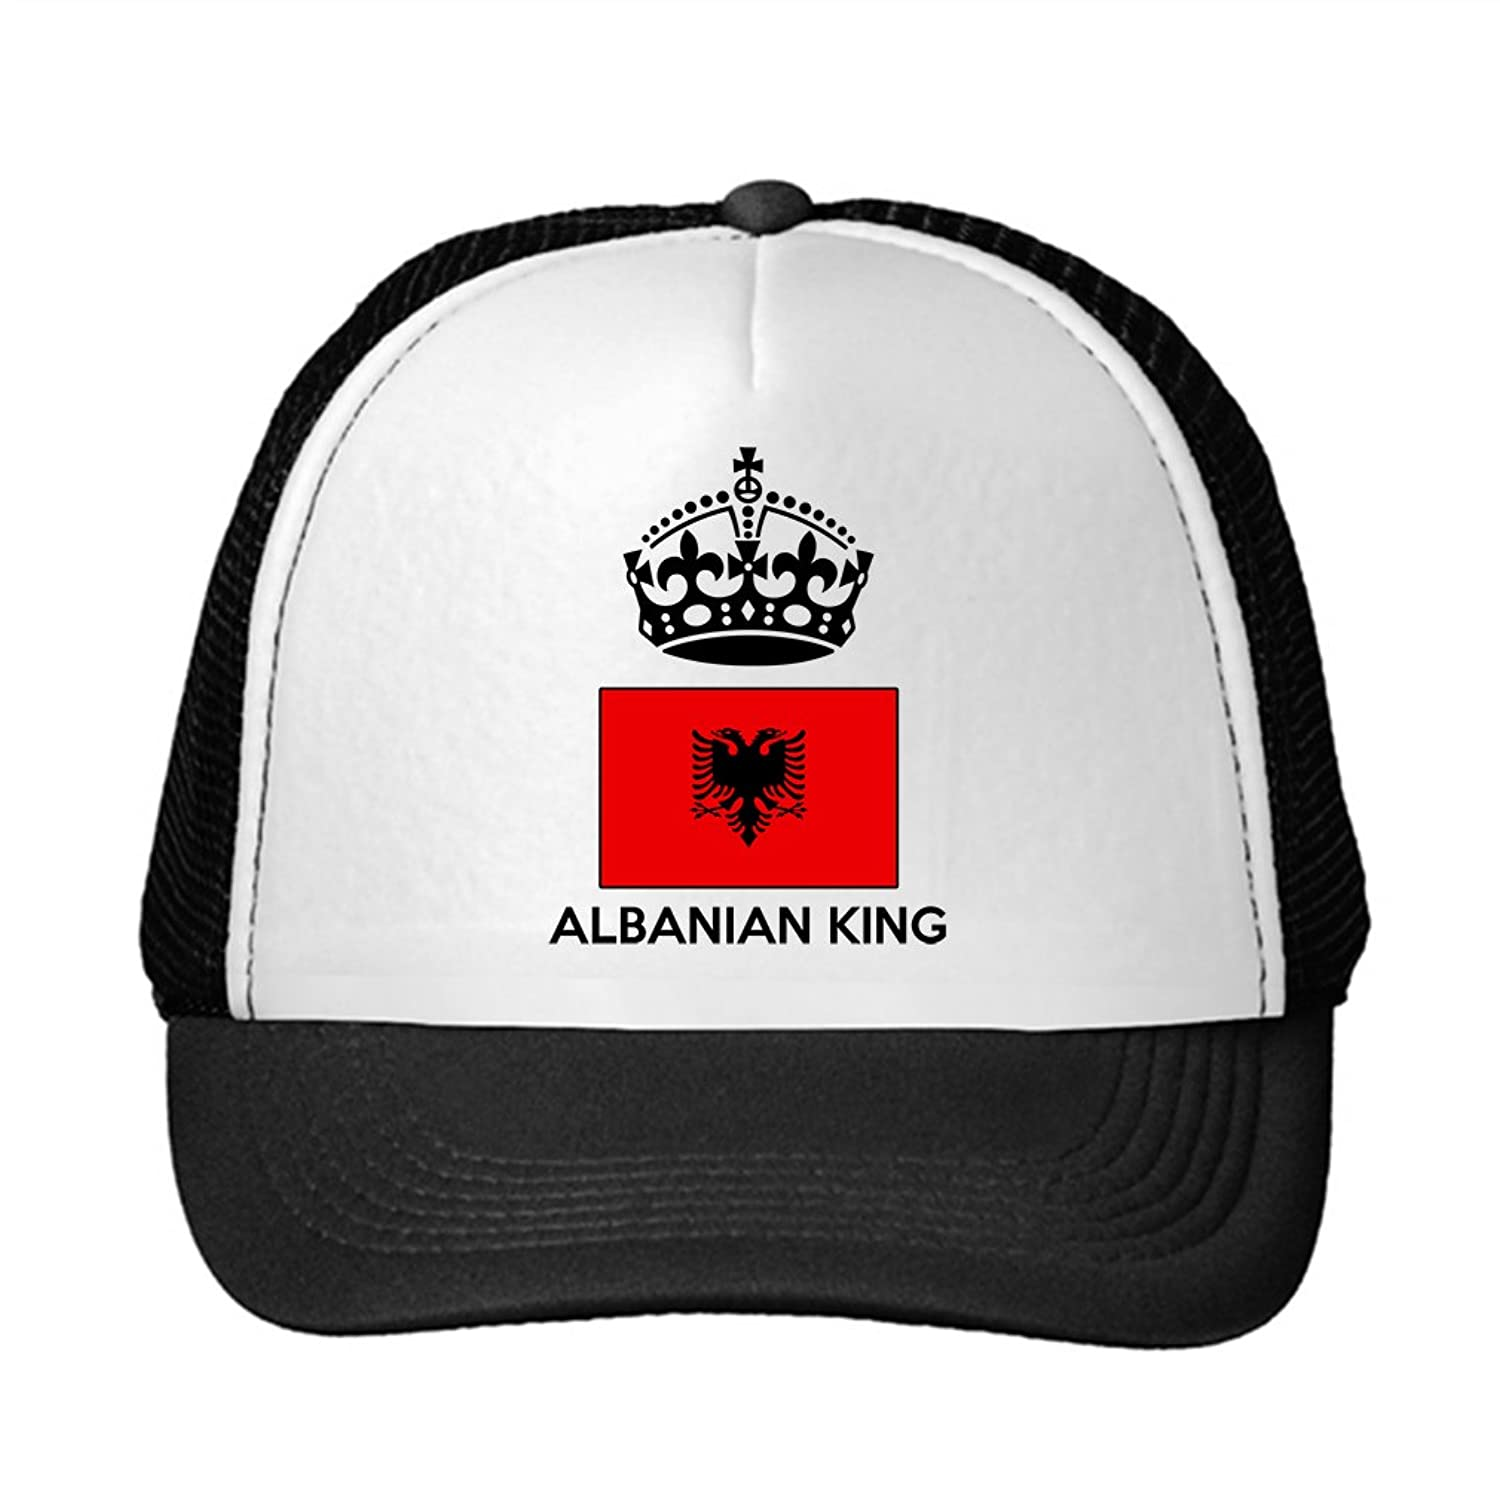 ALBANIAN KING Flag Country Adjustable Trucker Hat Cap